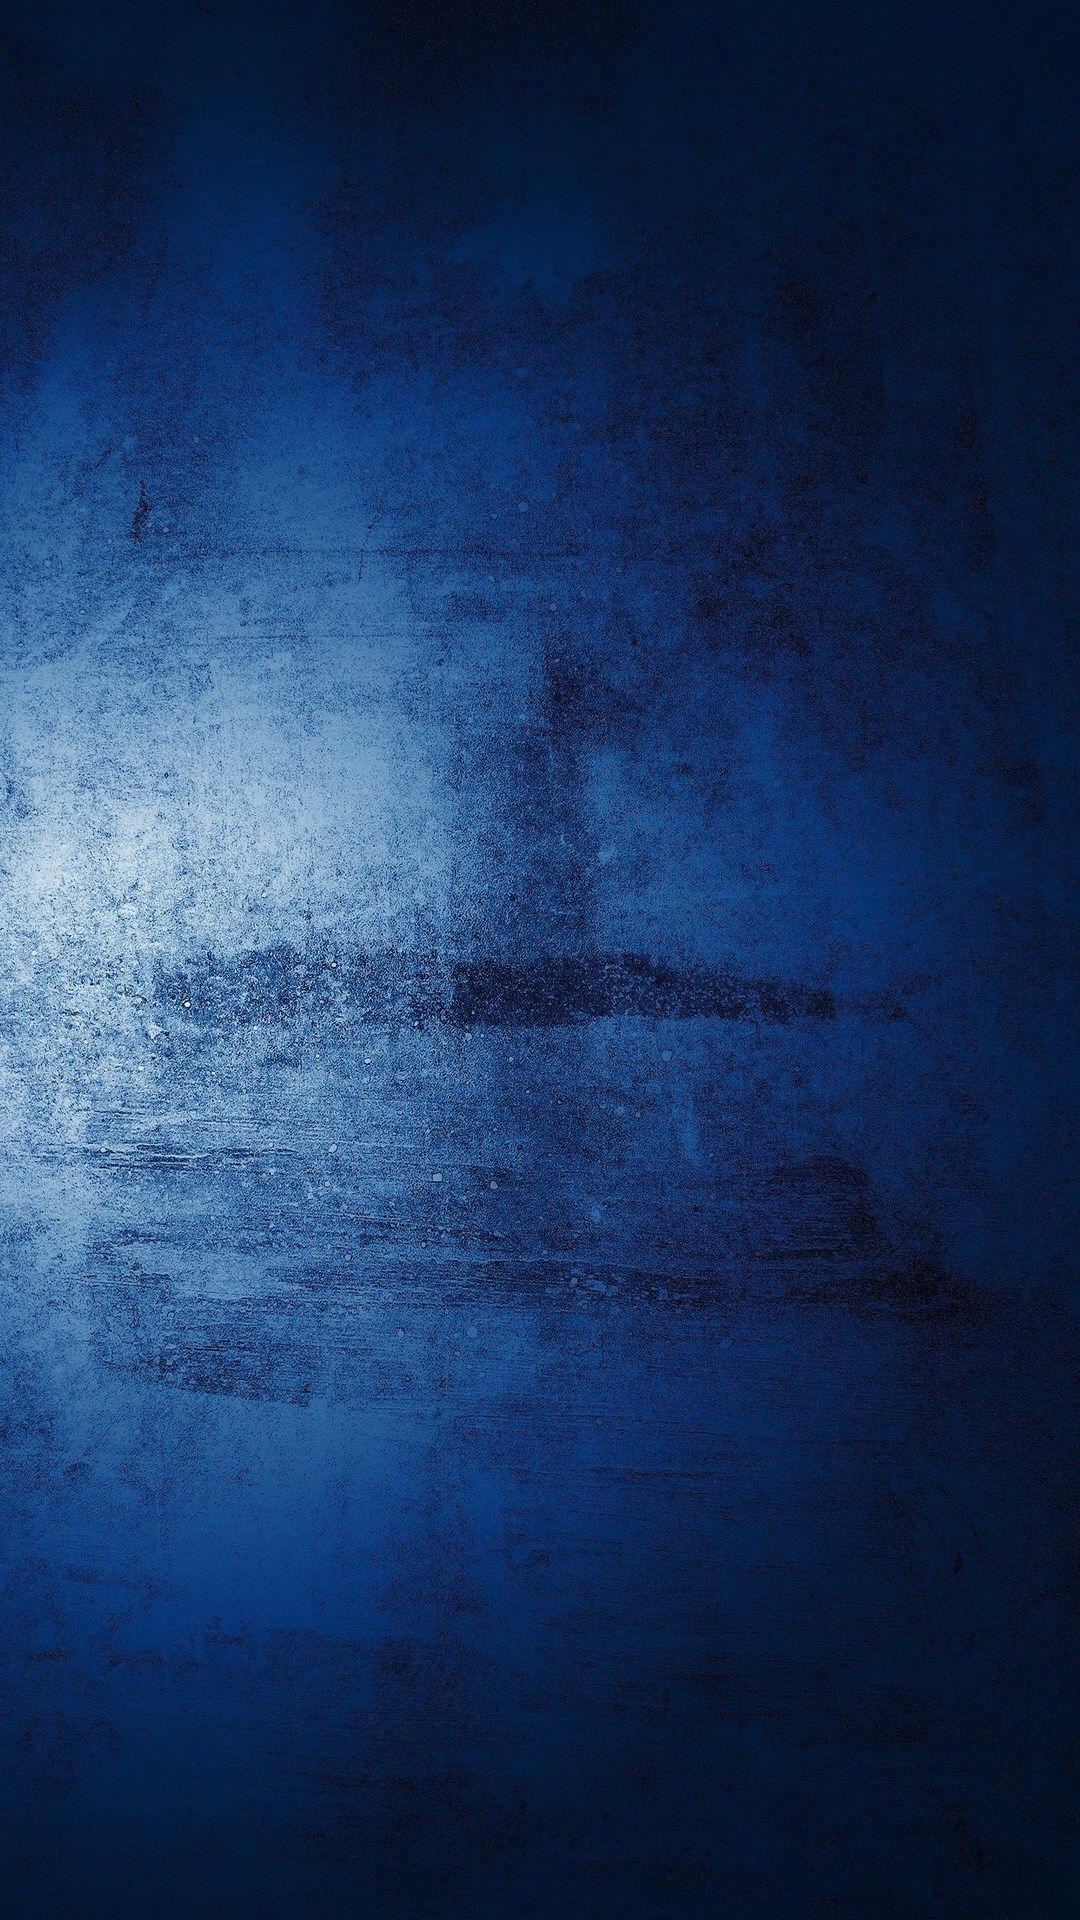 blue wall abstract mobile wallpaper 1080x1920 | ololoshenka